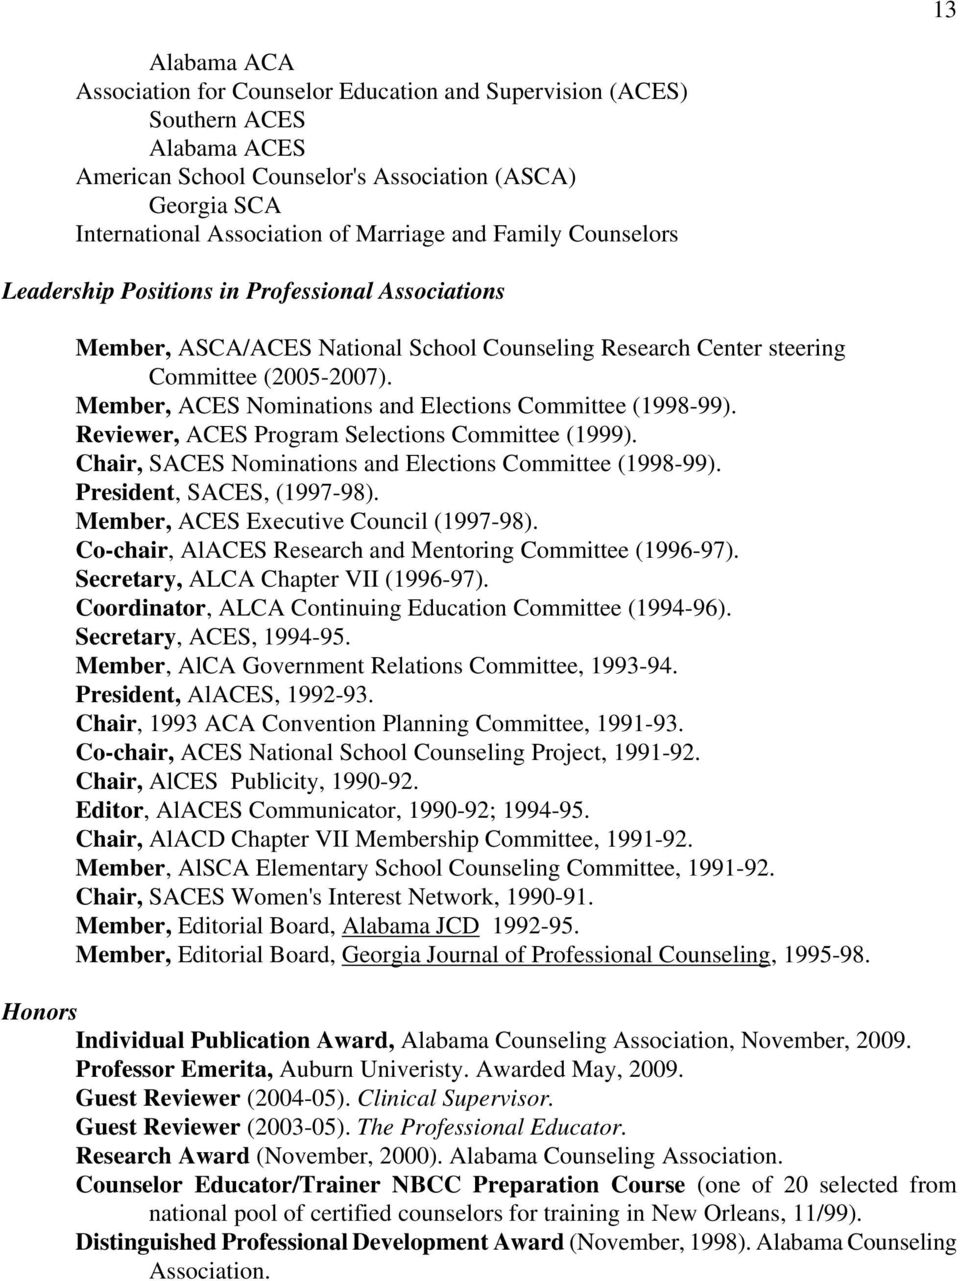 Member, ACES Nominations and Elections Committee (1998-99). Reviewer, ACES Program Selections Committee (1999). Chair, SACES Nominations and Elections Committee (1998-99). President, SACES, (1997-98).